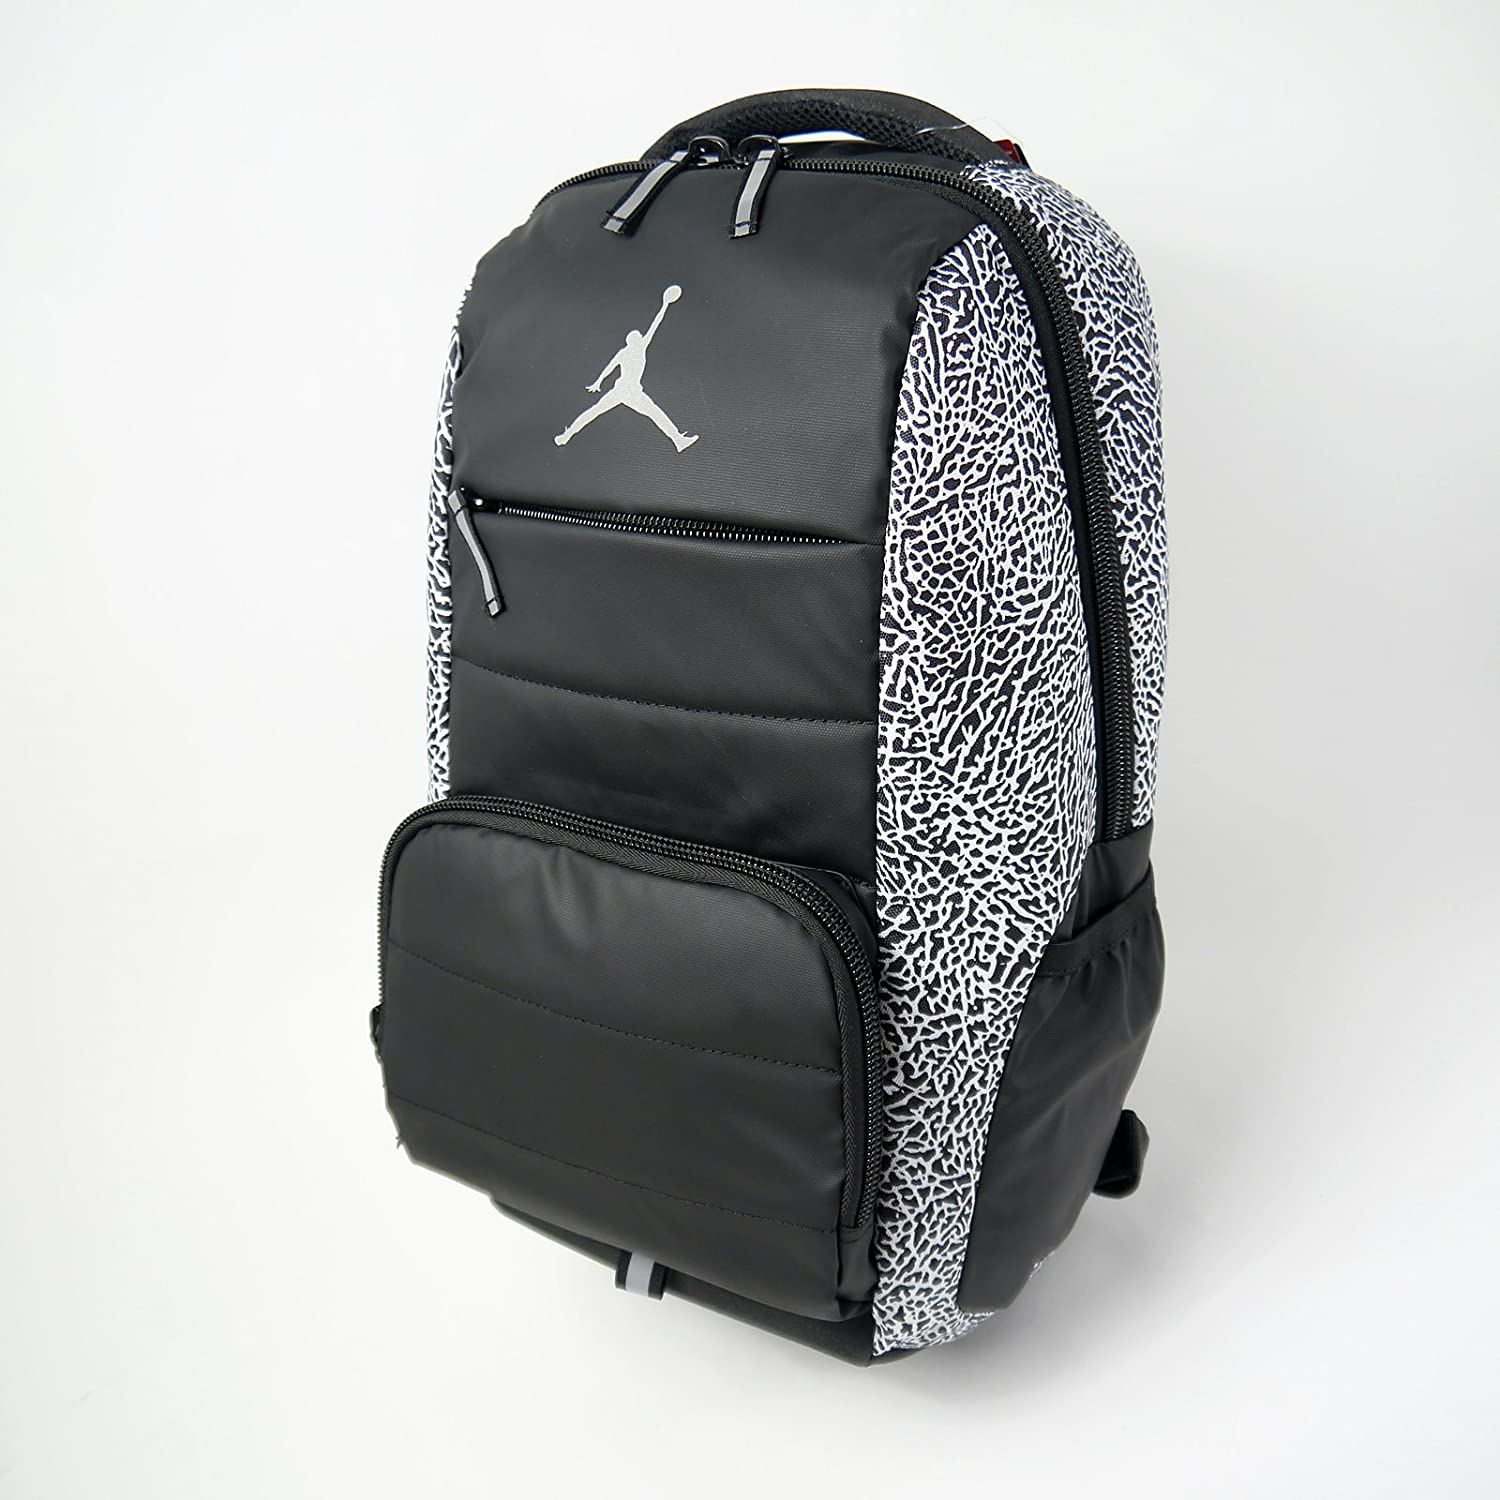 f6f884e9acbf4d Nike Jordan Jumpman Backpack Black 9A1640-210 60%OFF ...